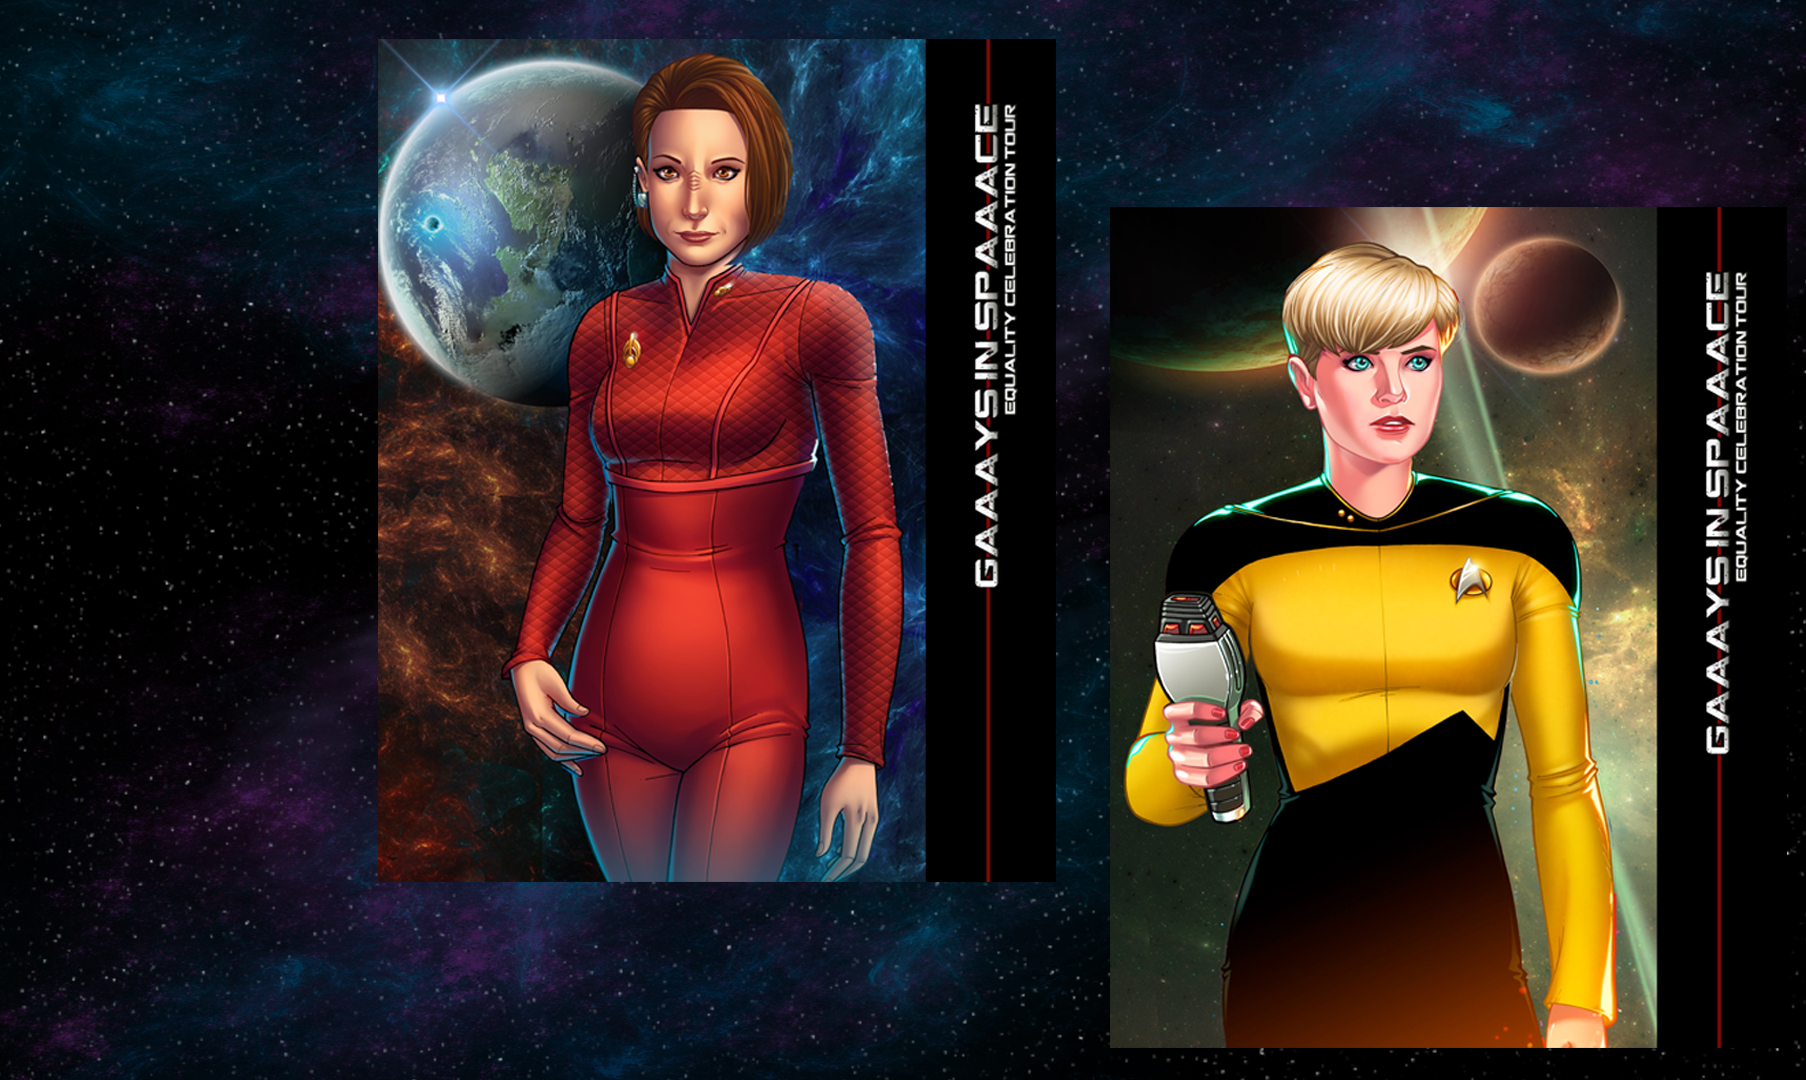 AUTOGRAPHED 'GIS' CHARACTER CANVASES - NANA VISITOR as 'Colonel Kira Nerys' (DS9) & DENISE CROSBY as 'Lt. Tasha Yar' (TNG)NOT AVAILABLE AT A RETAIL PRICE